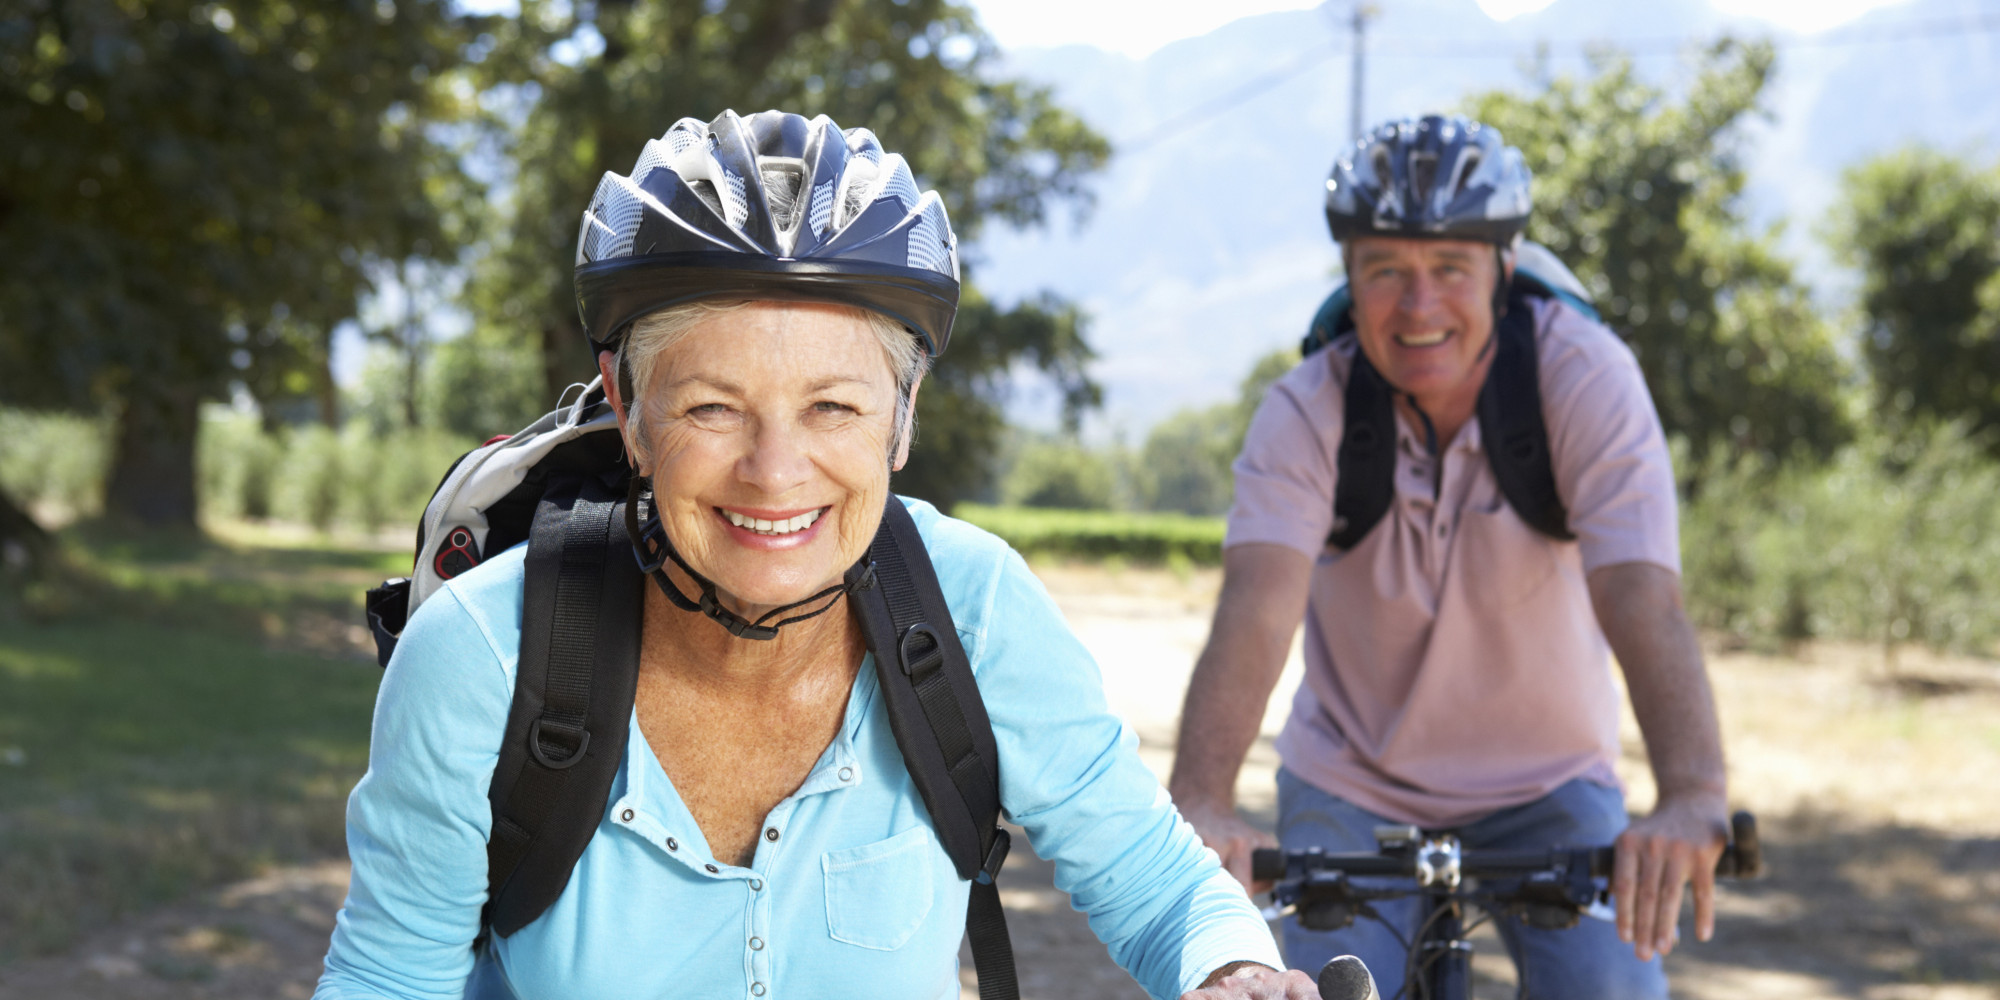 70 Plussers Bike And Barge Tours For Boomers And More